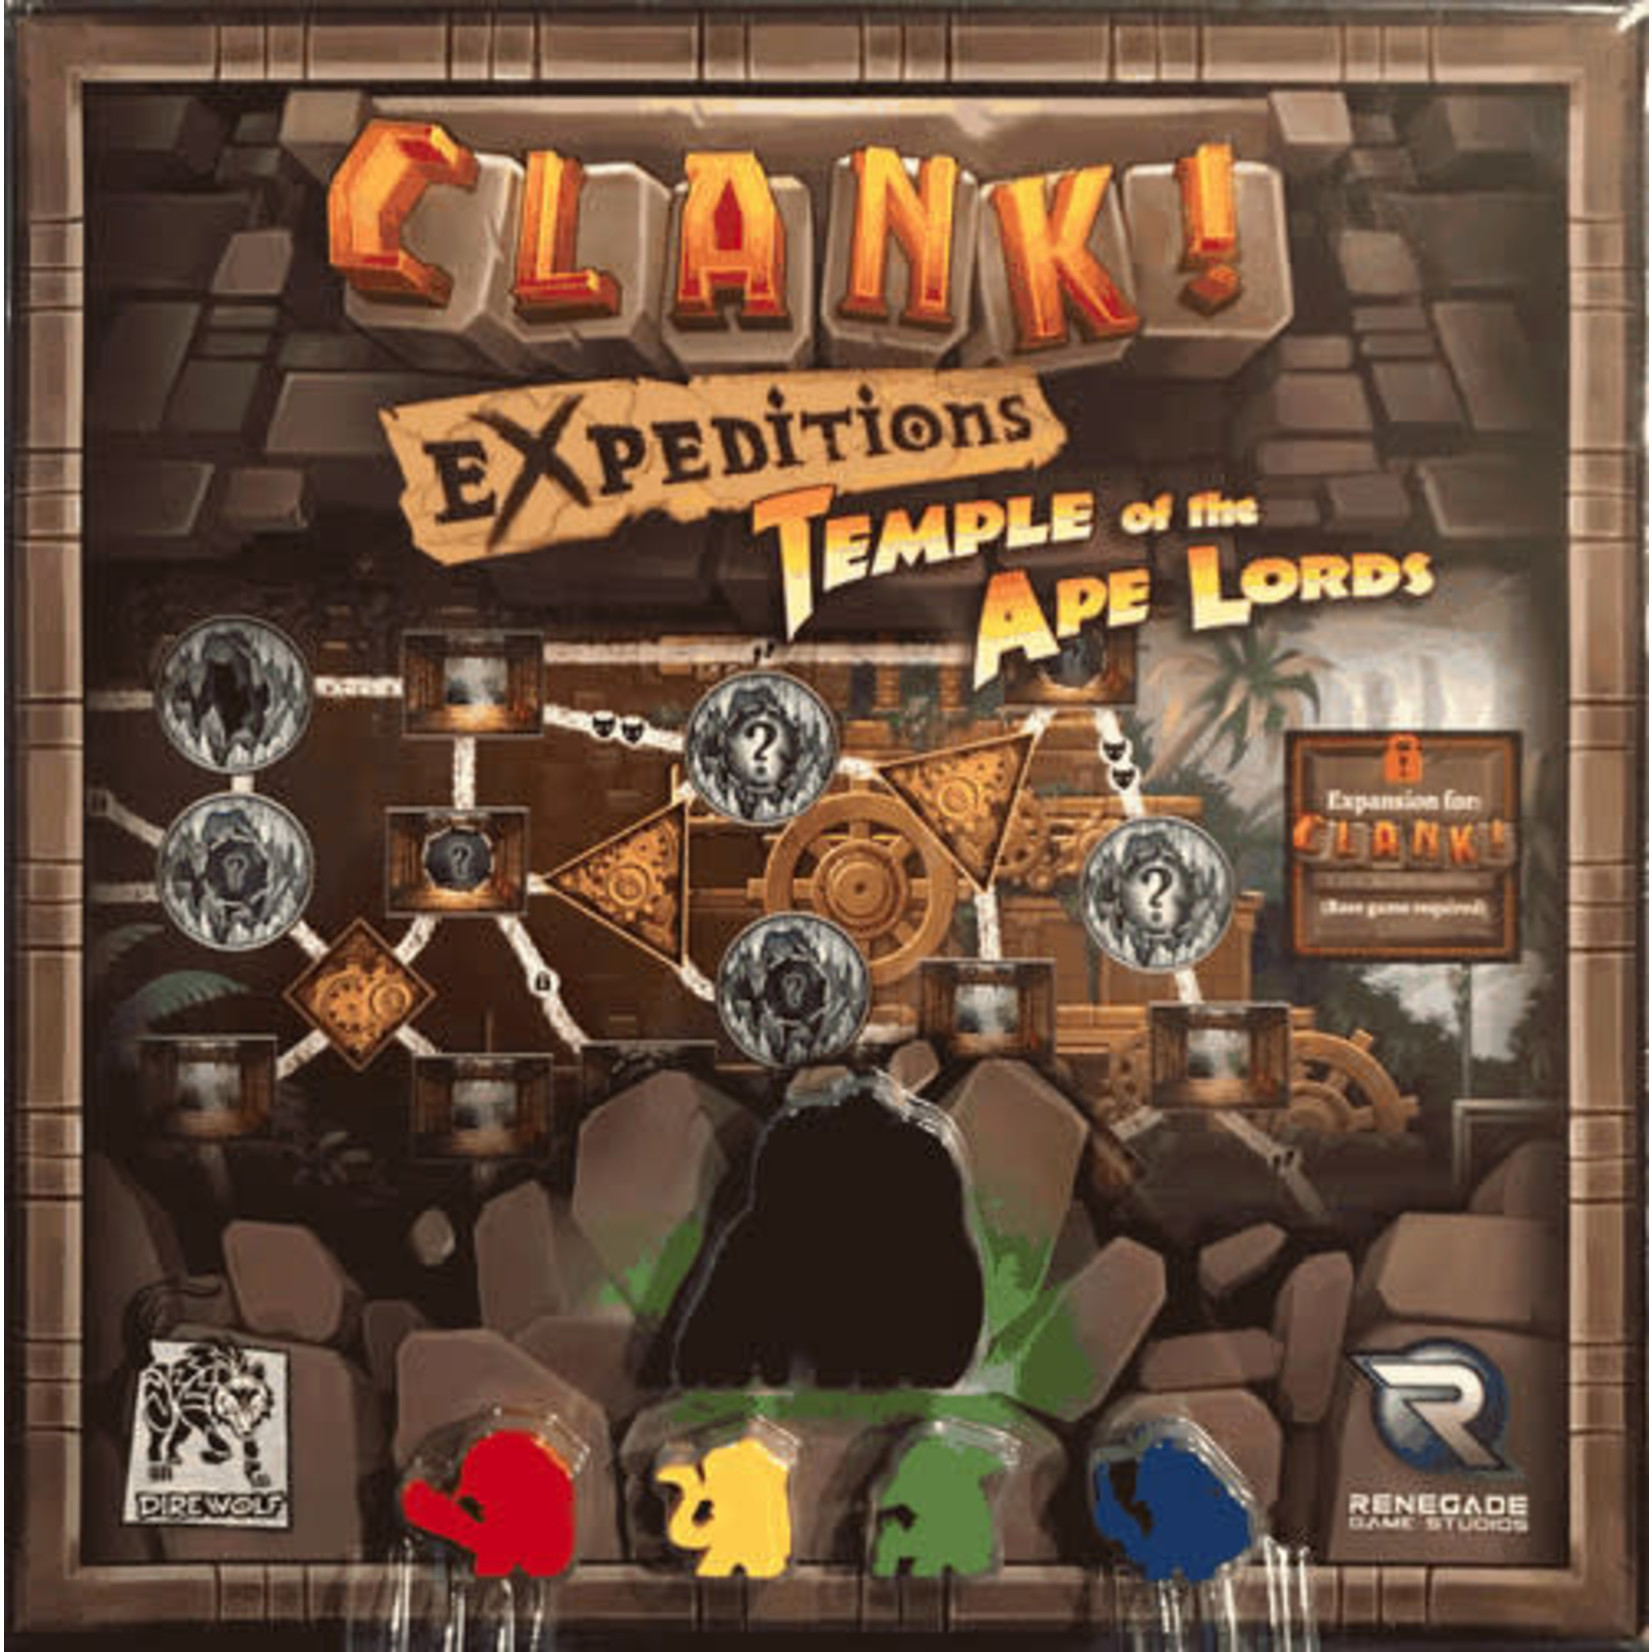 Clank! Expeditions: Temple of the Ape Lords Expansion